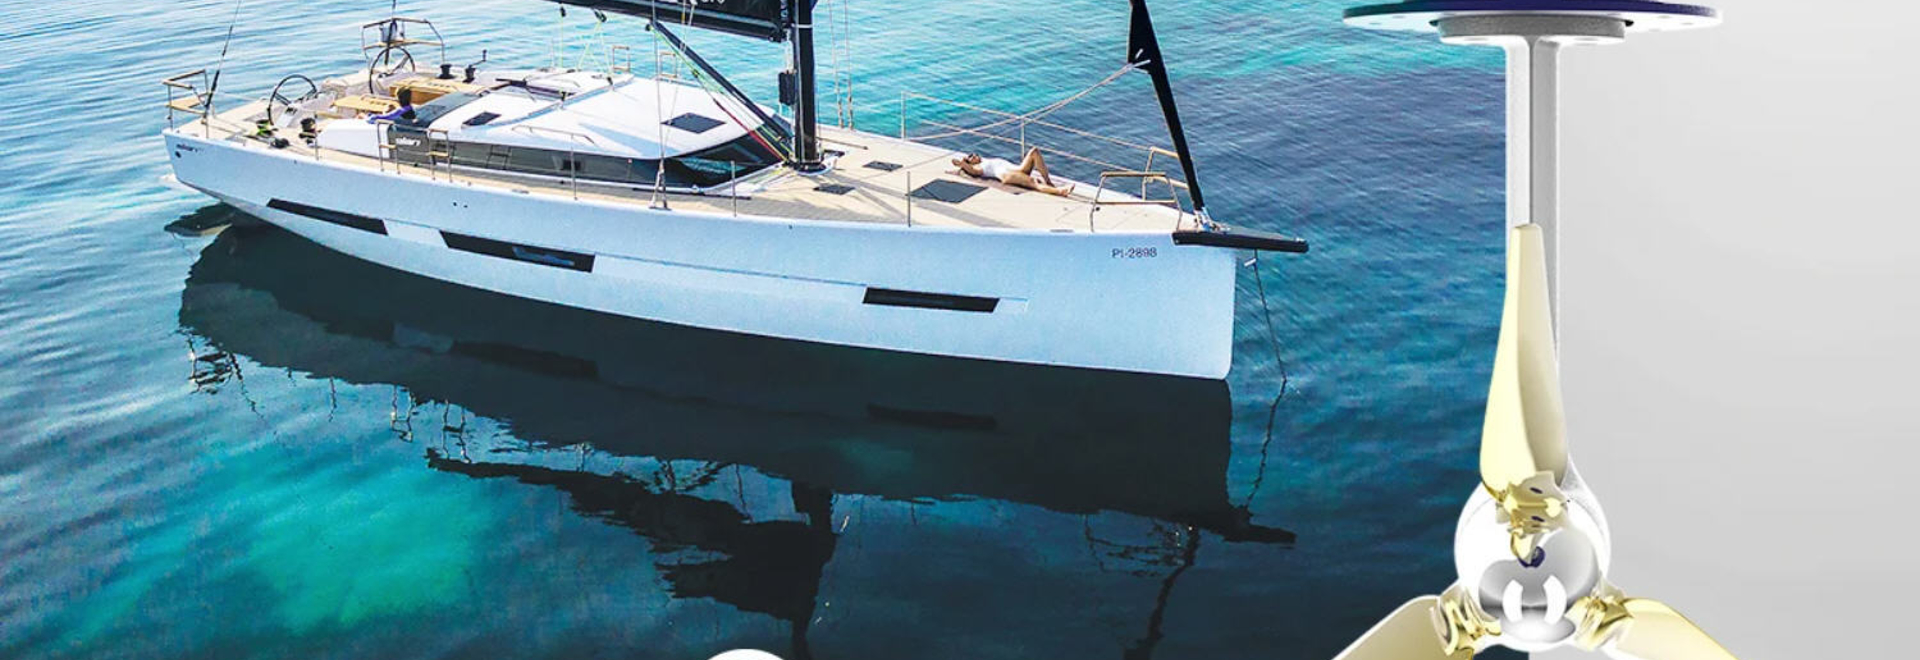 What You Need to Know Before Buying an Electric Sailing Yacht or Sailboat